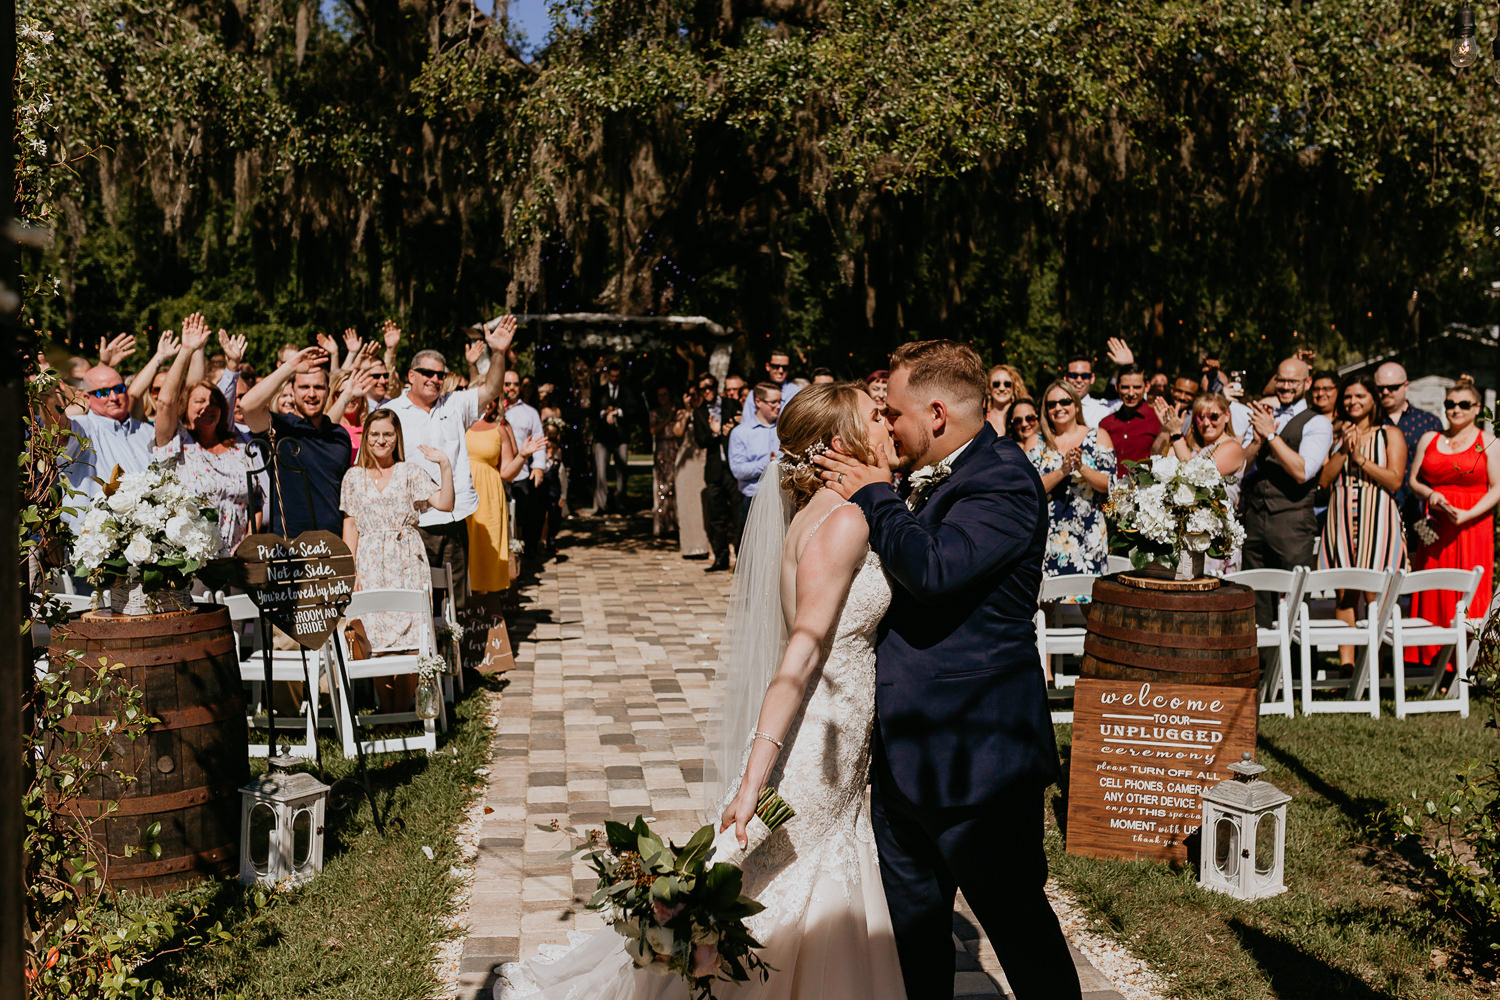 newlyweds passionately kissing, ceremony guests in background cheering